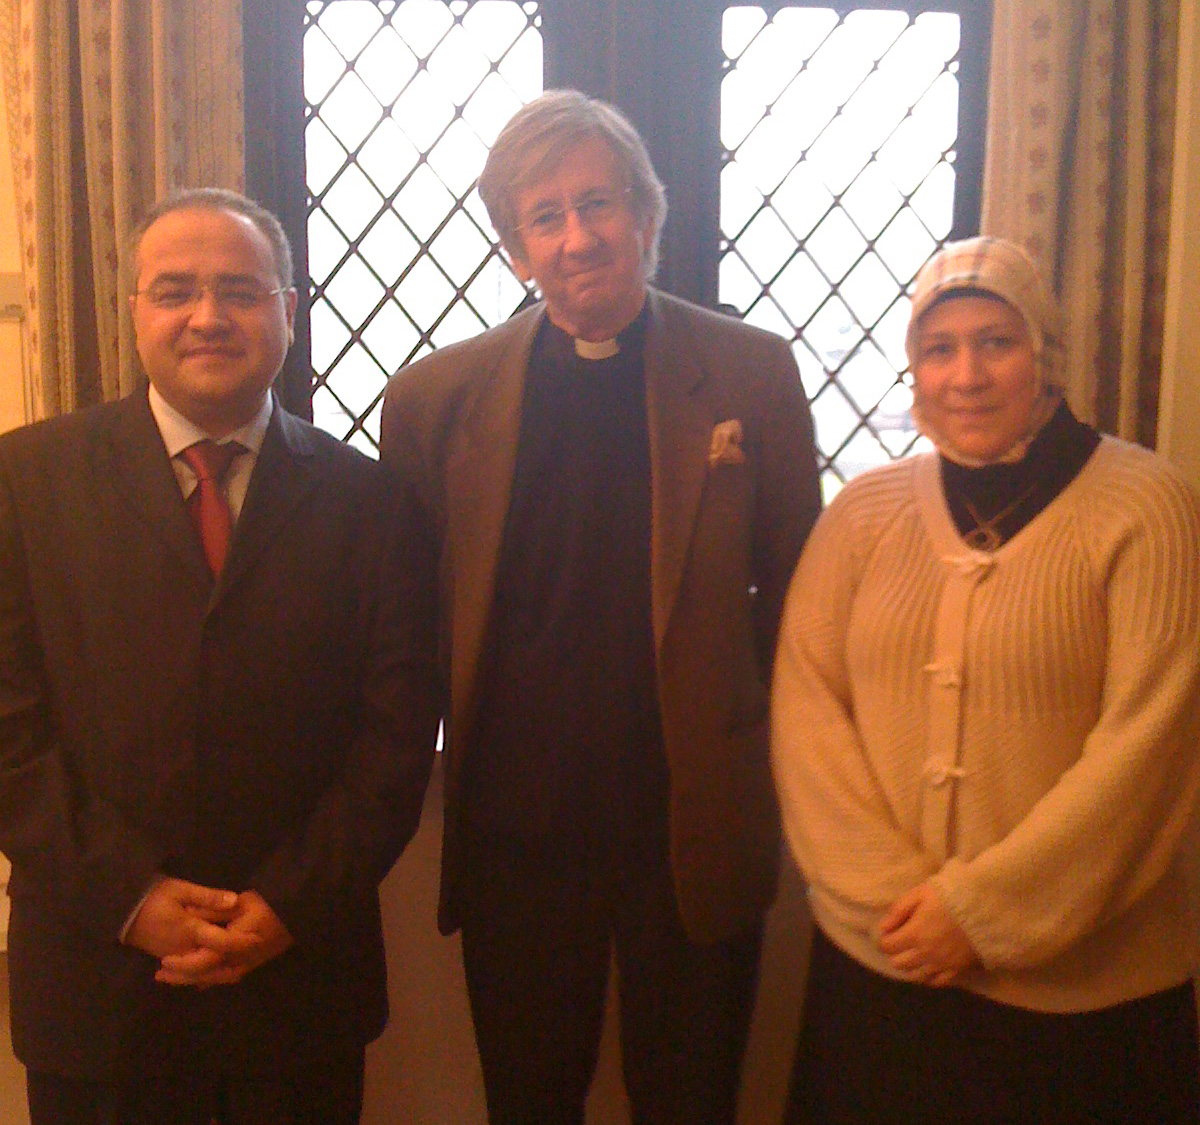 Meeting with Revd Canon Guy Wilkinson, Adviser to Archbishop of Canterbury